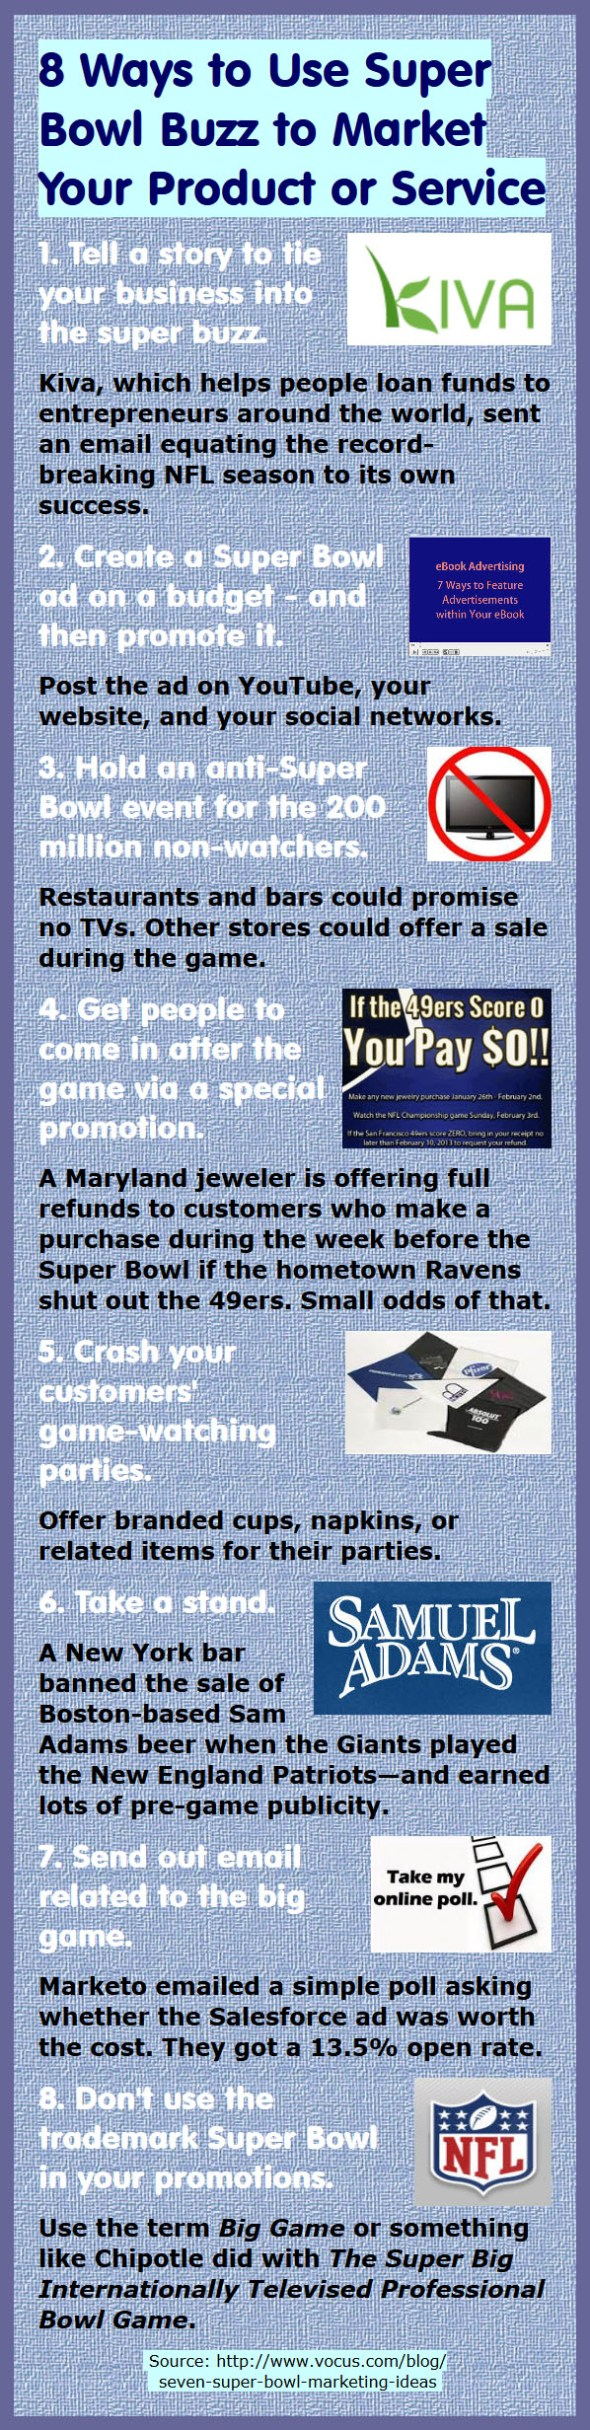 Super Bowl Promotions